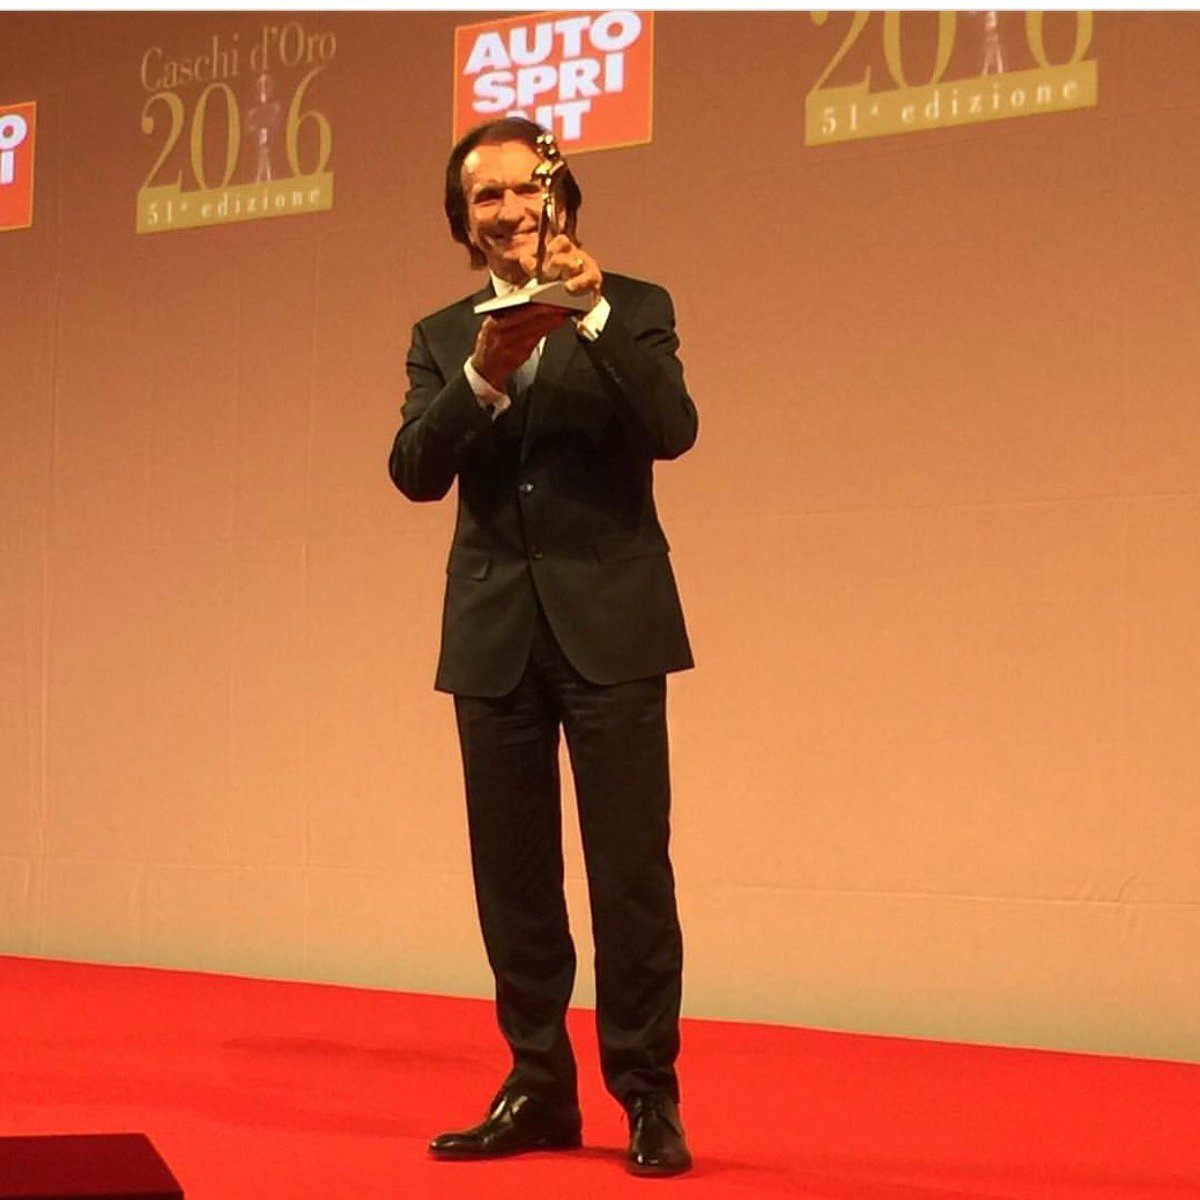 Huge congratulations to my grandfather @emmofittipaldi for winning the Legends Gold Helmet! You are a legend! https://t.co/SRFKo1vUbi